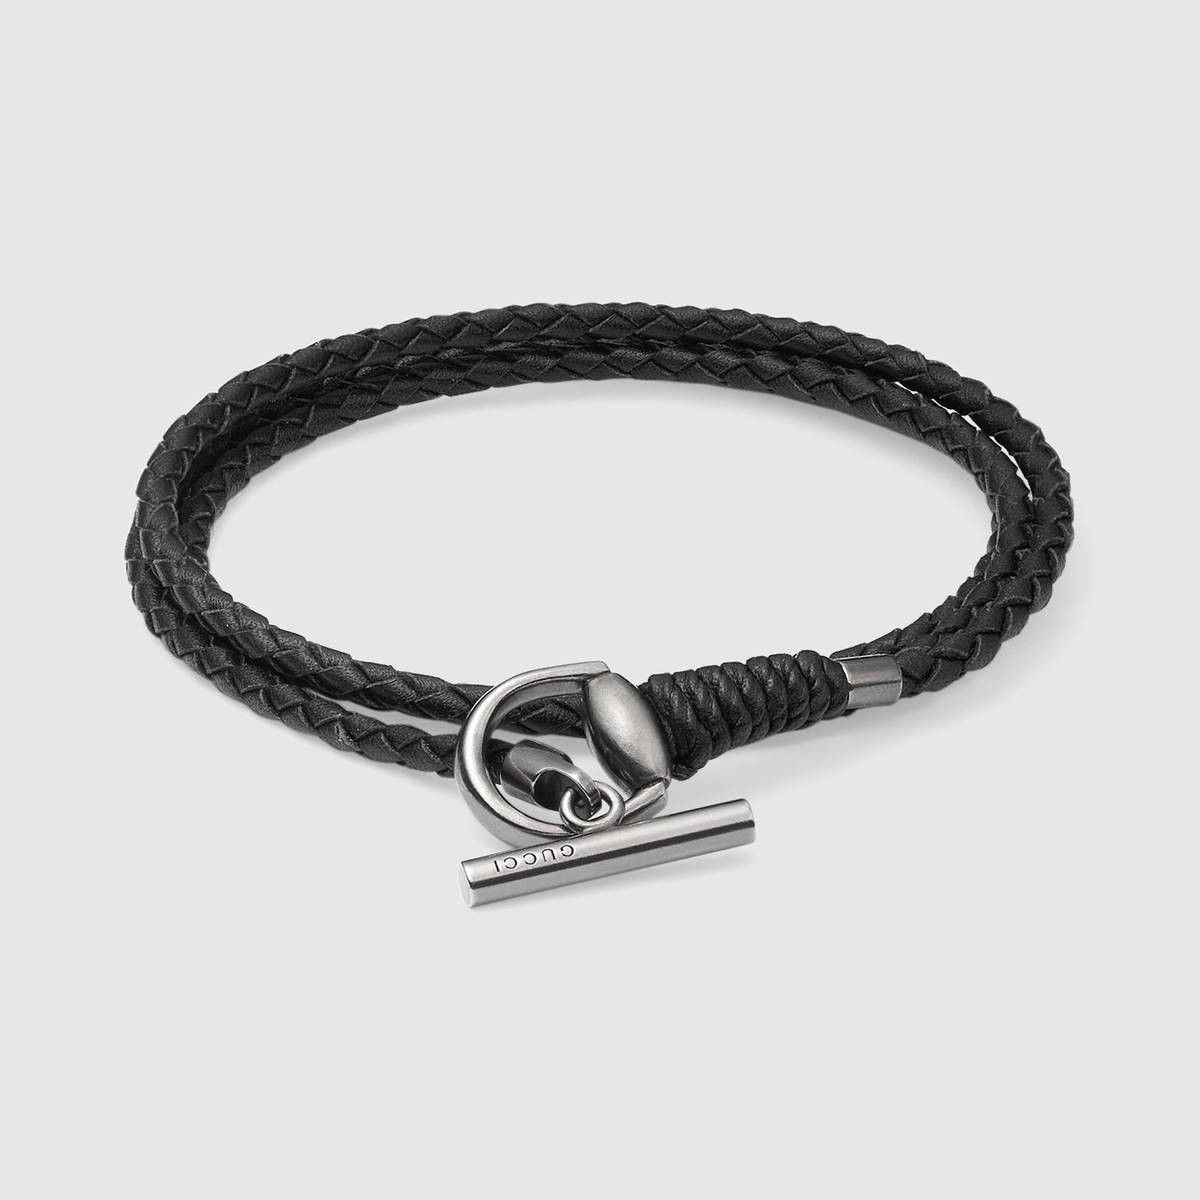 2b2e43a55 GUCCI Leather wrap bracelet with Horsebit - black leather. #gucci ...